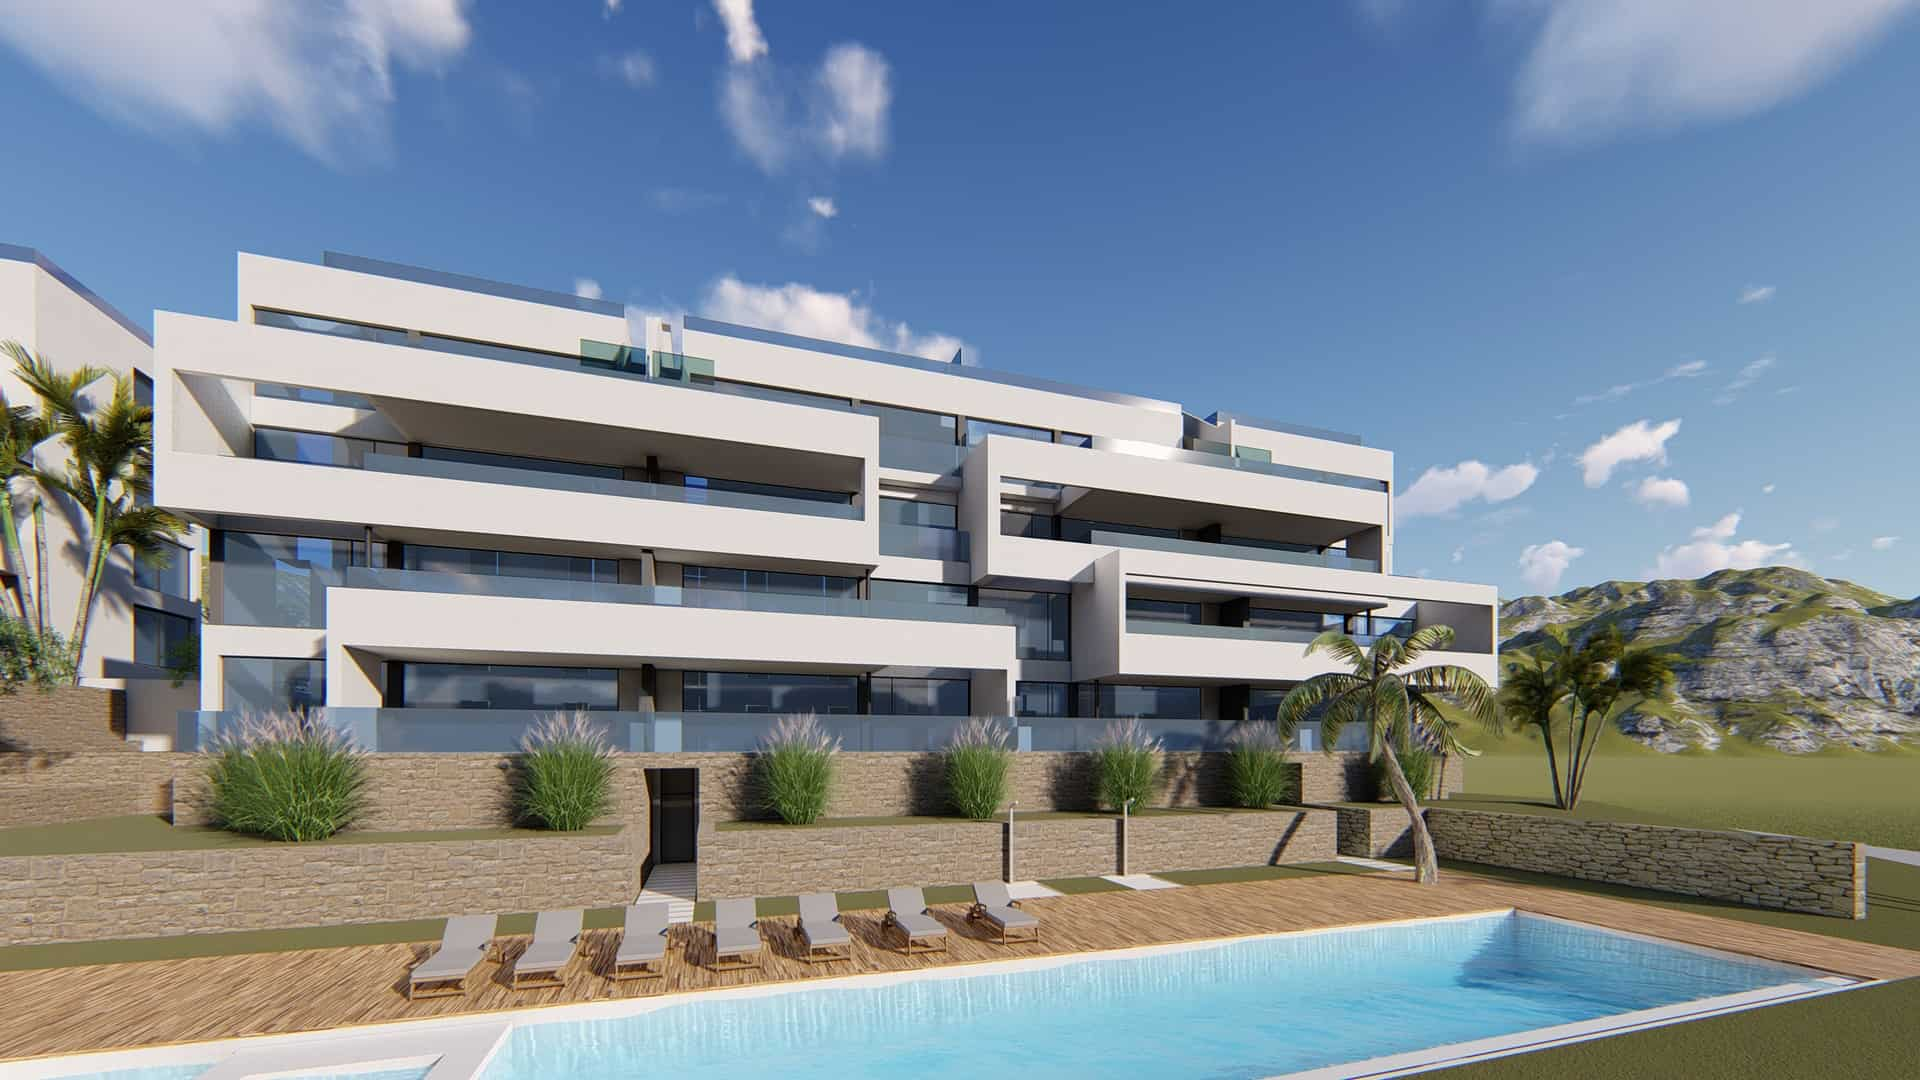 Ref:RH-12653-property Apartment For Sale in San Miguel De Salinas